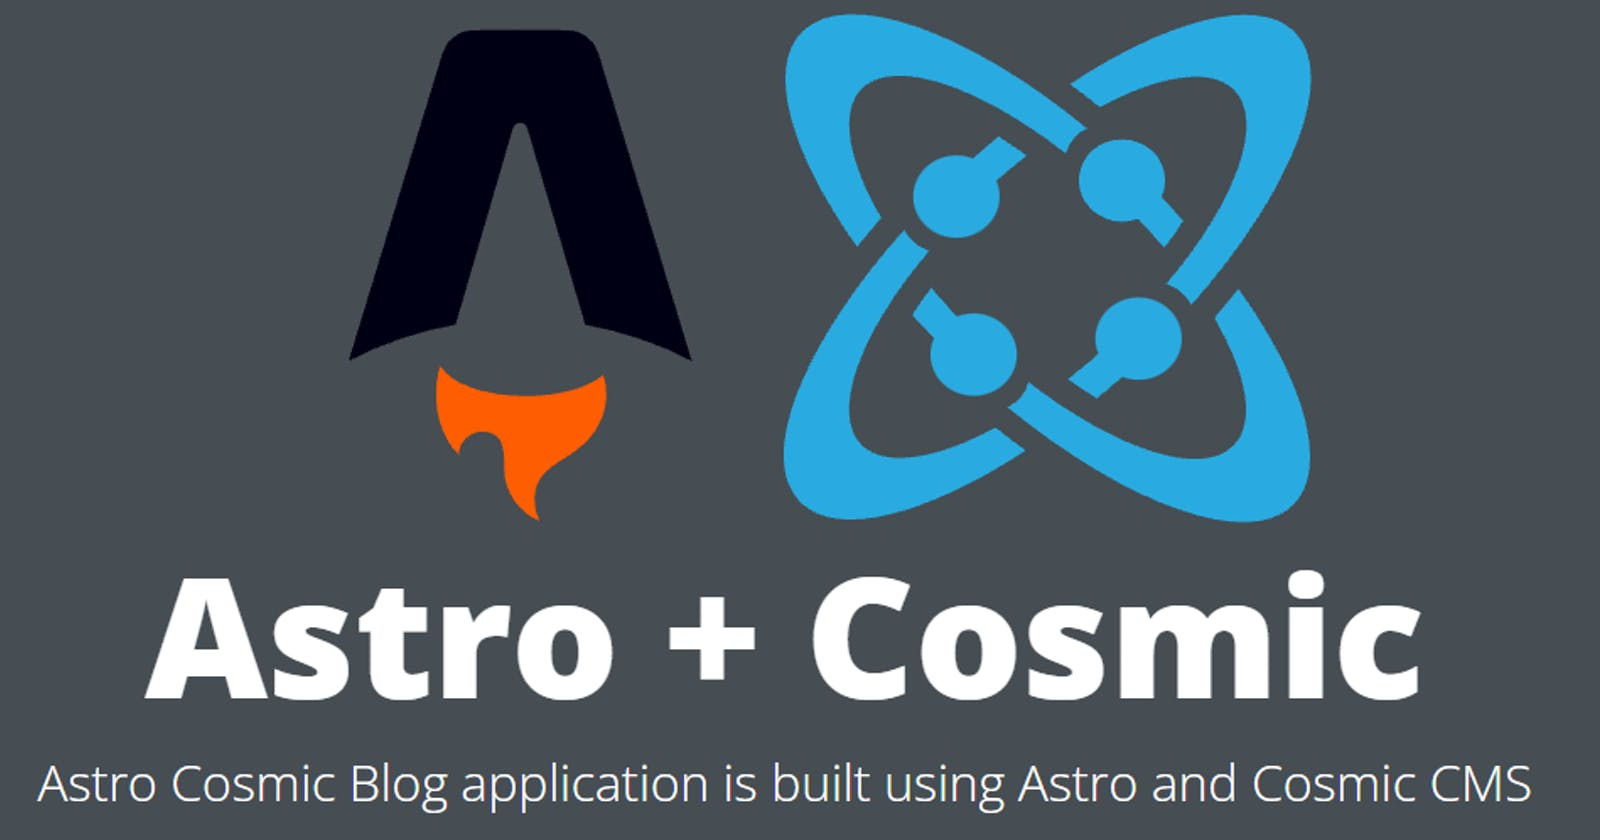 How to Build a Blazing-Fast Astro Blog with Cosmic CMS